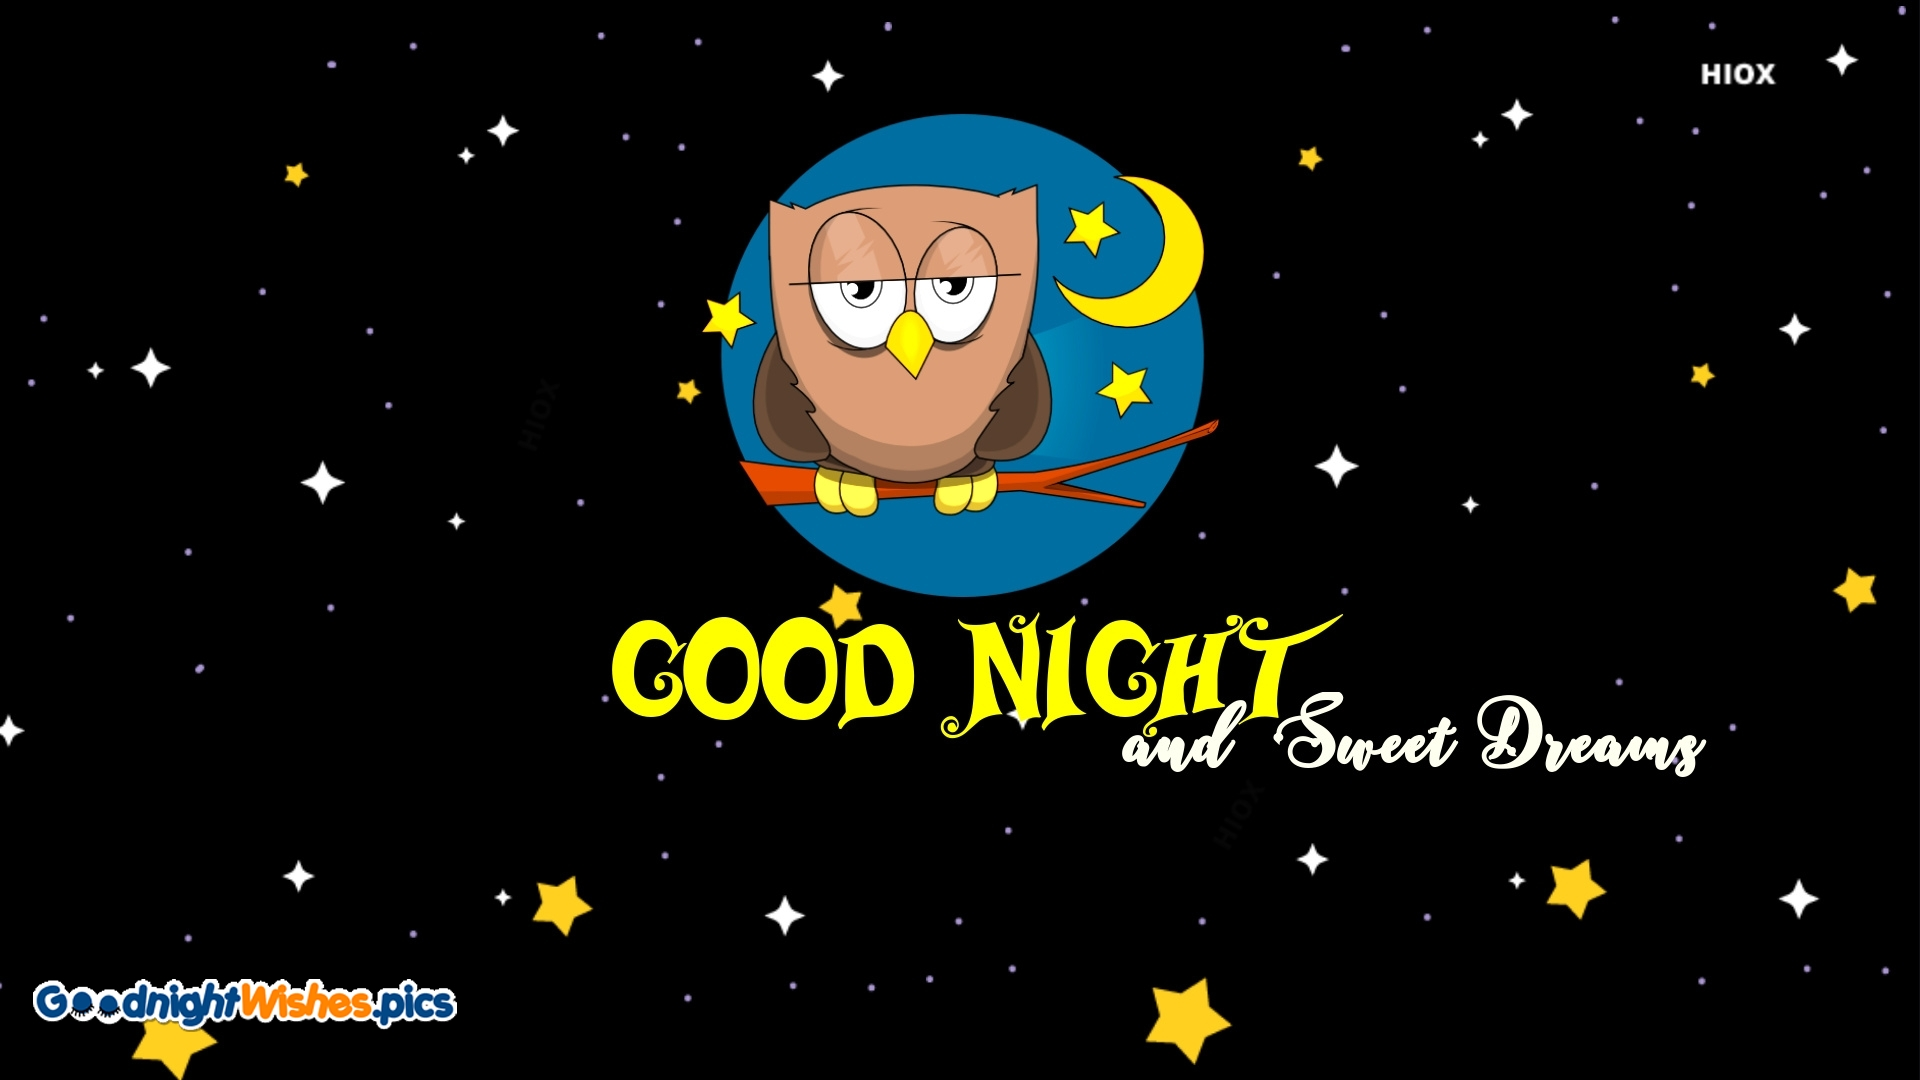 Good Night Sweet Dreams Wishes with Owl